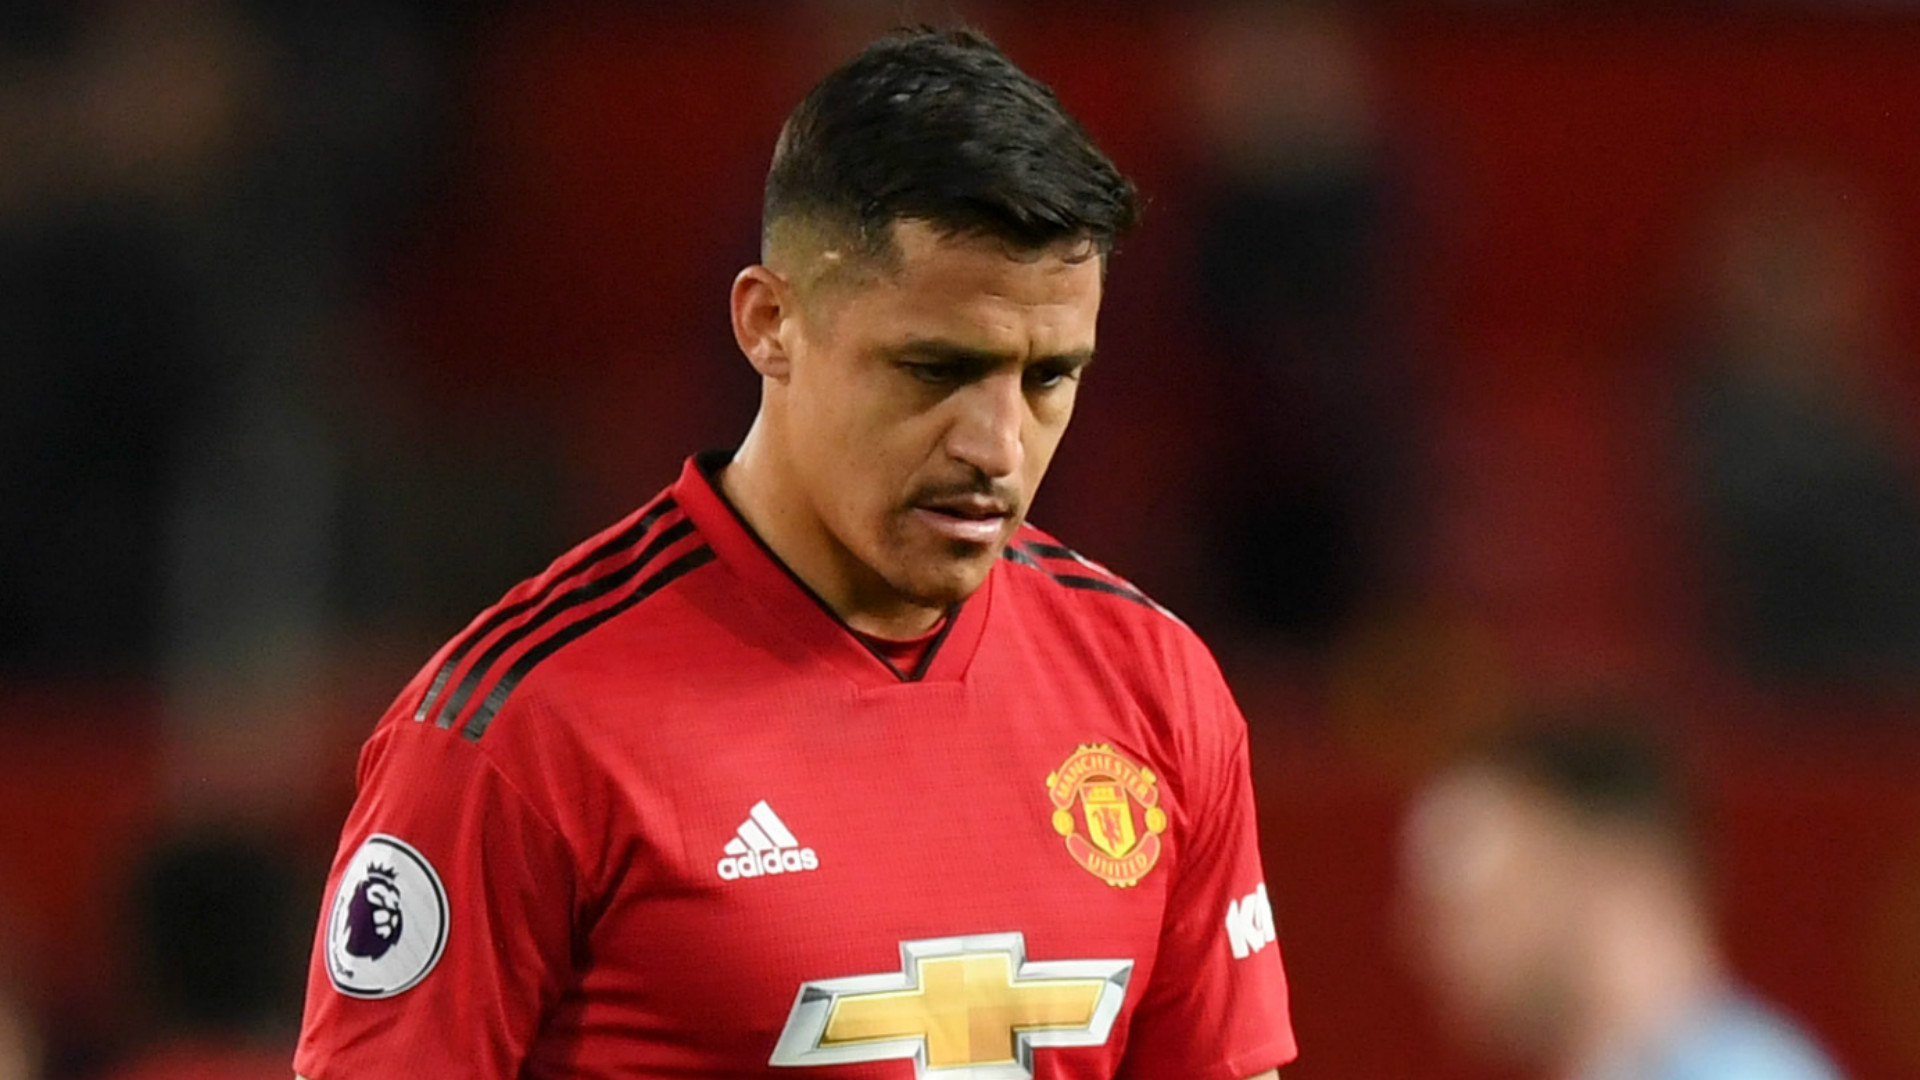 Man Utd prepared to pay £13 MILLION to clear Alexis off books